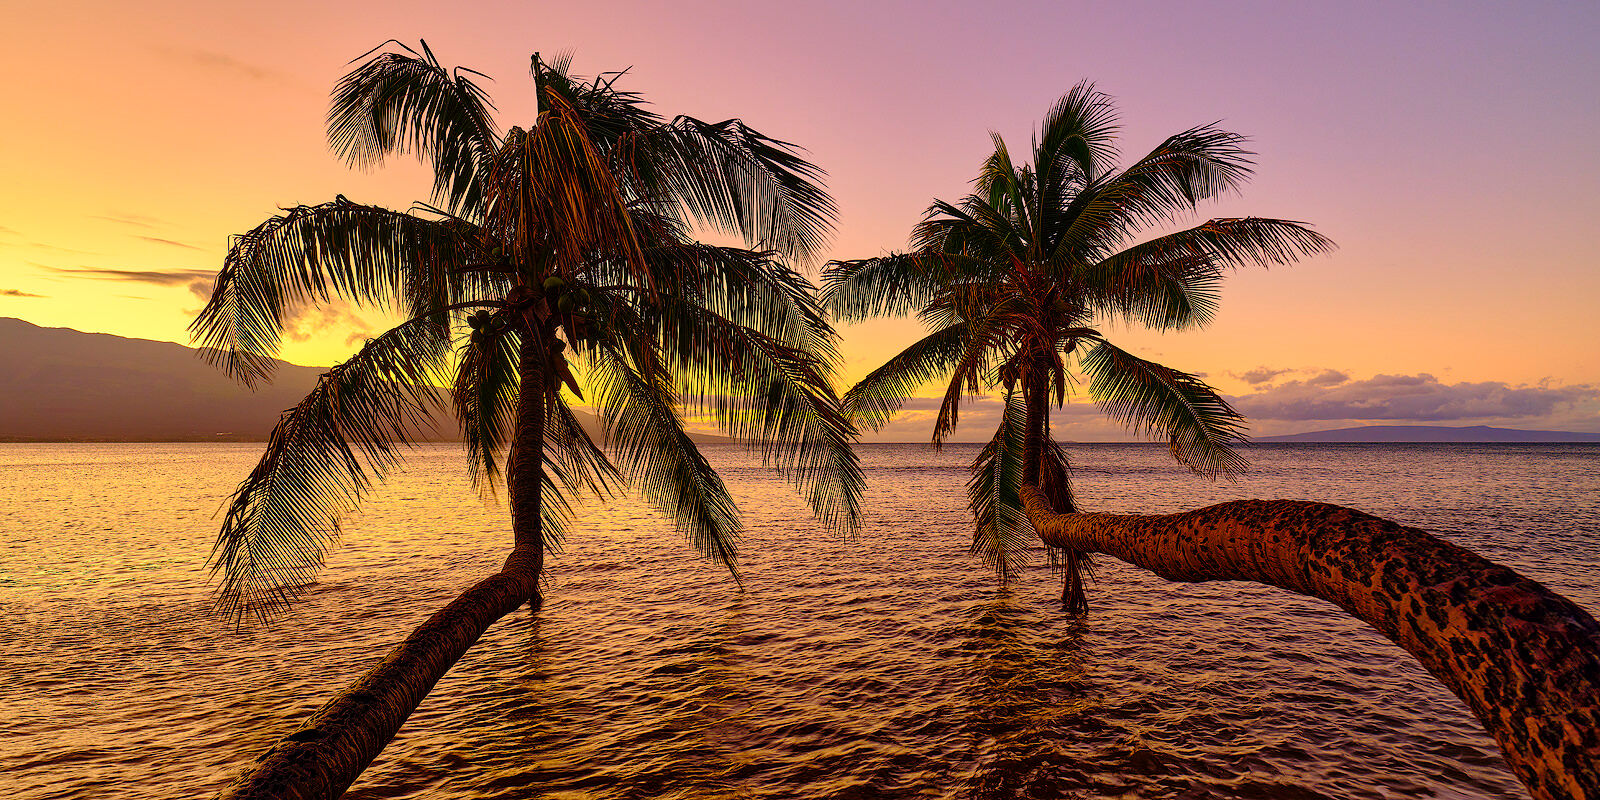 maalea, sunrise, tequila, maalea harbor, twin palms, bent palms, photo